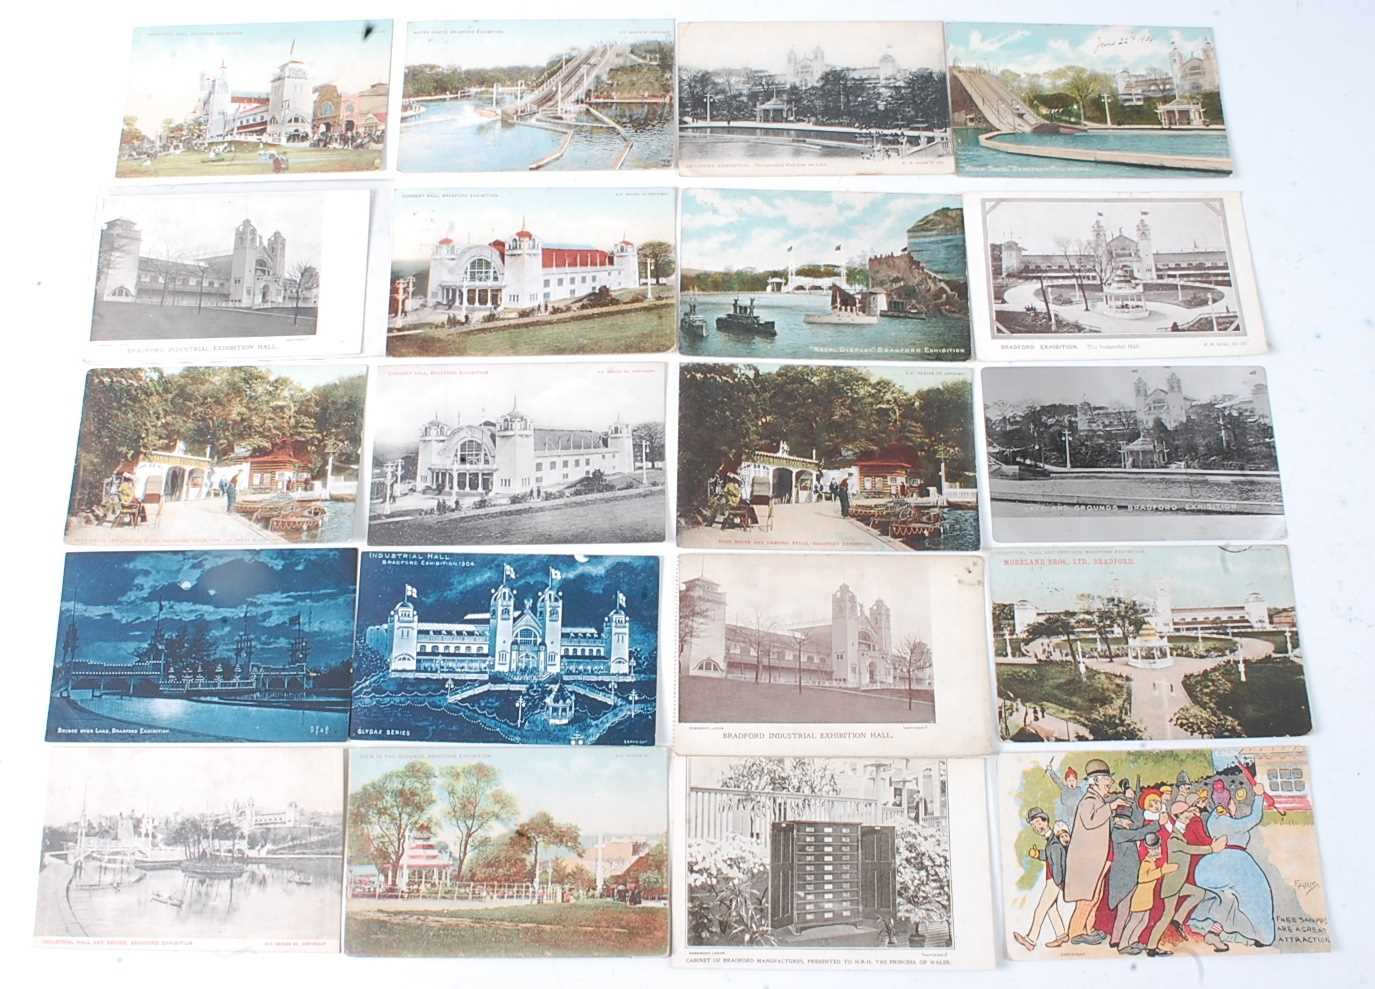 A large collection of 1951 Festival of Britain postcards, seemingly arranged by places or publishers - Image 5 of 9